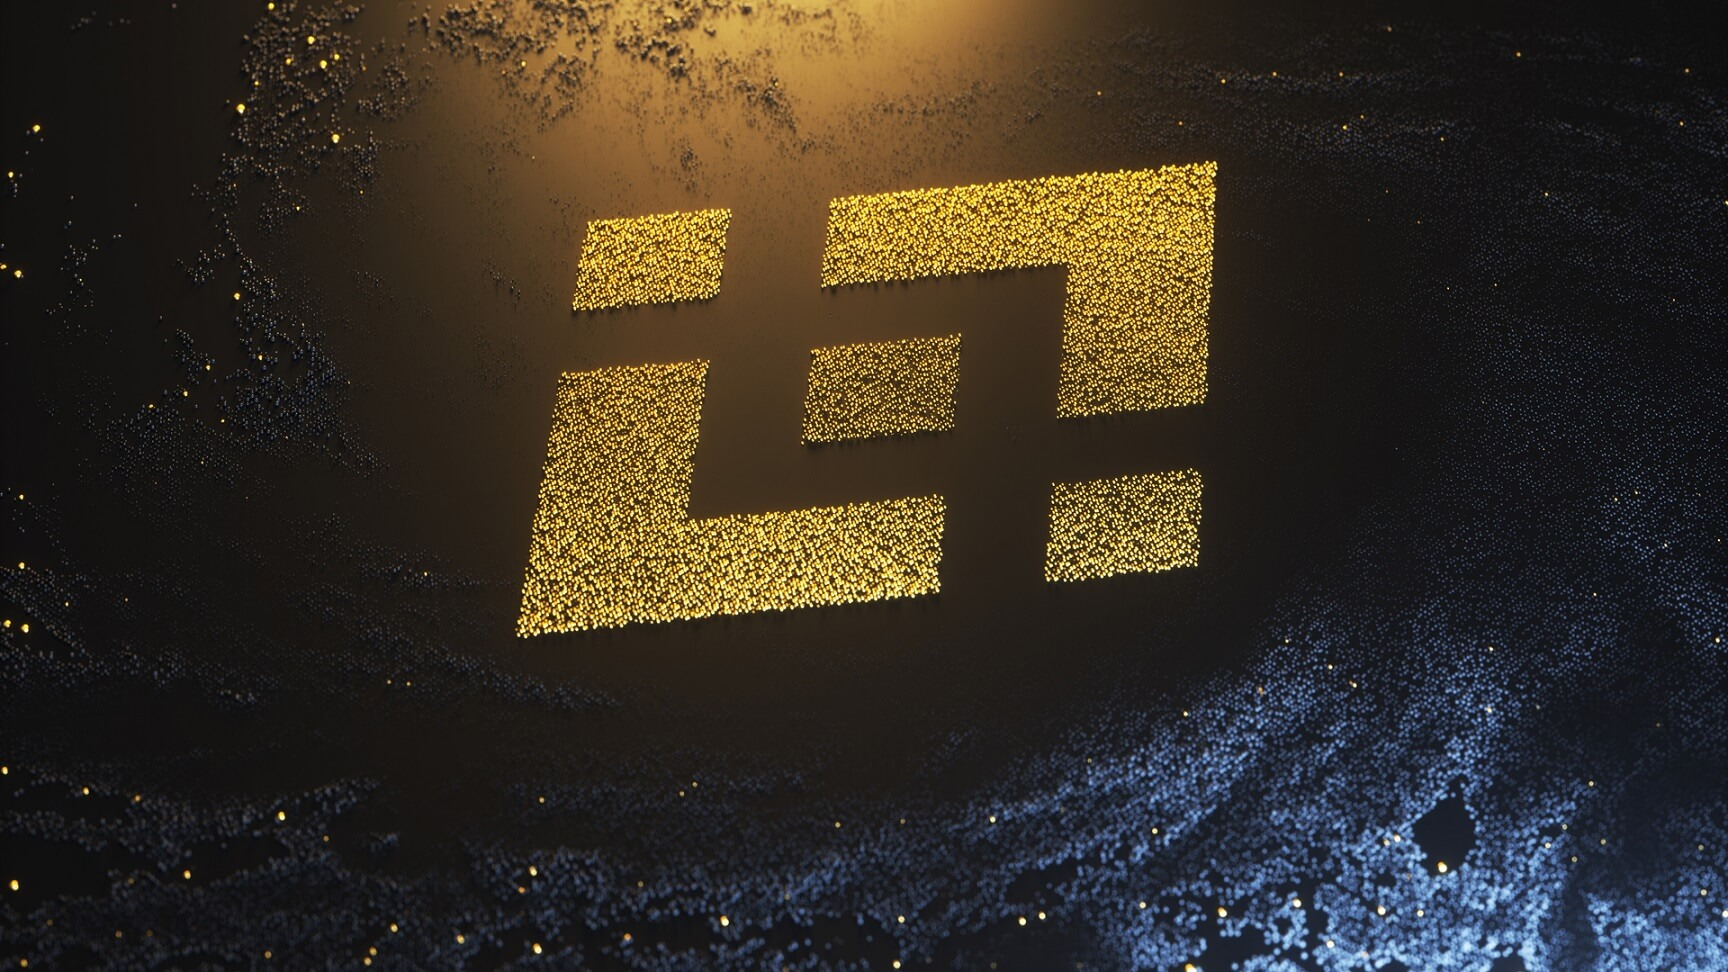 Binance announces Venus, a stablecoin positioned to rival Facebook's Libra